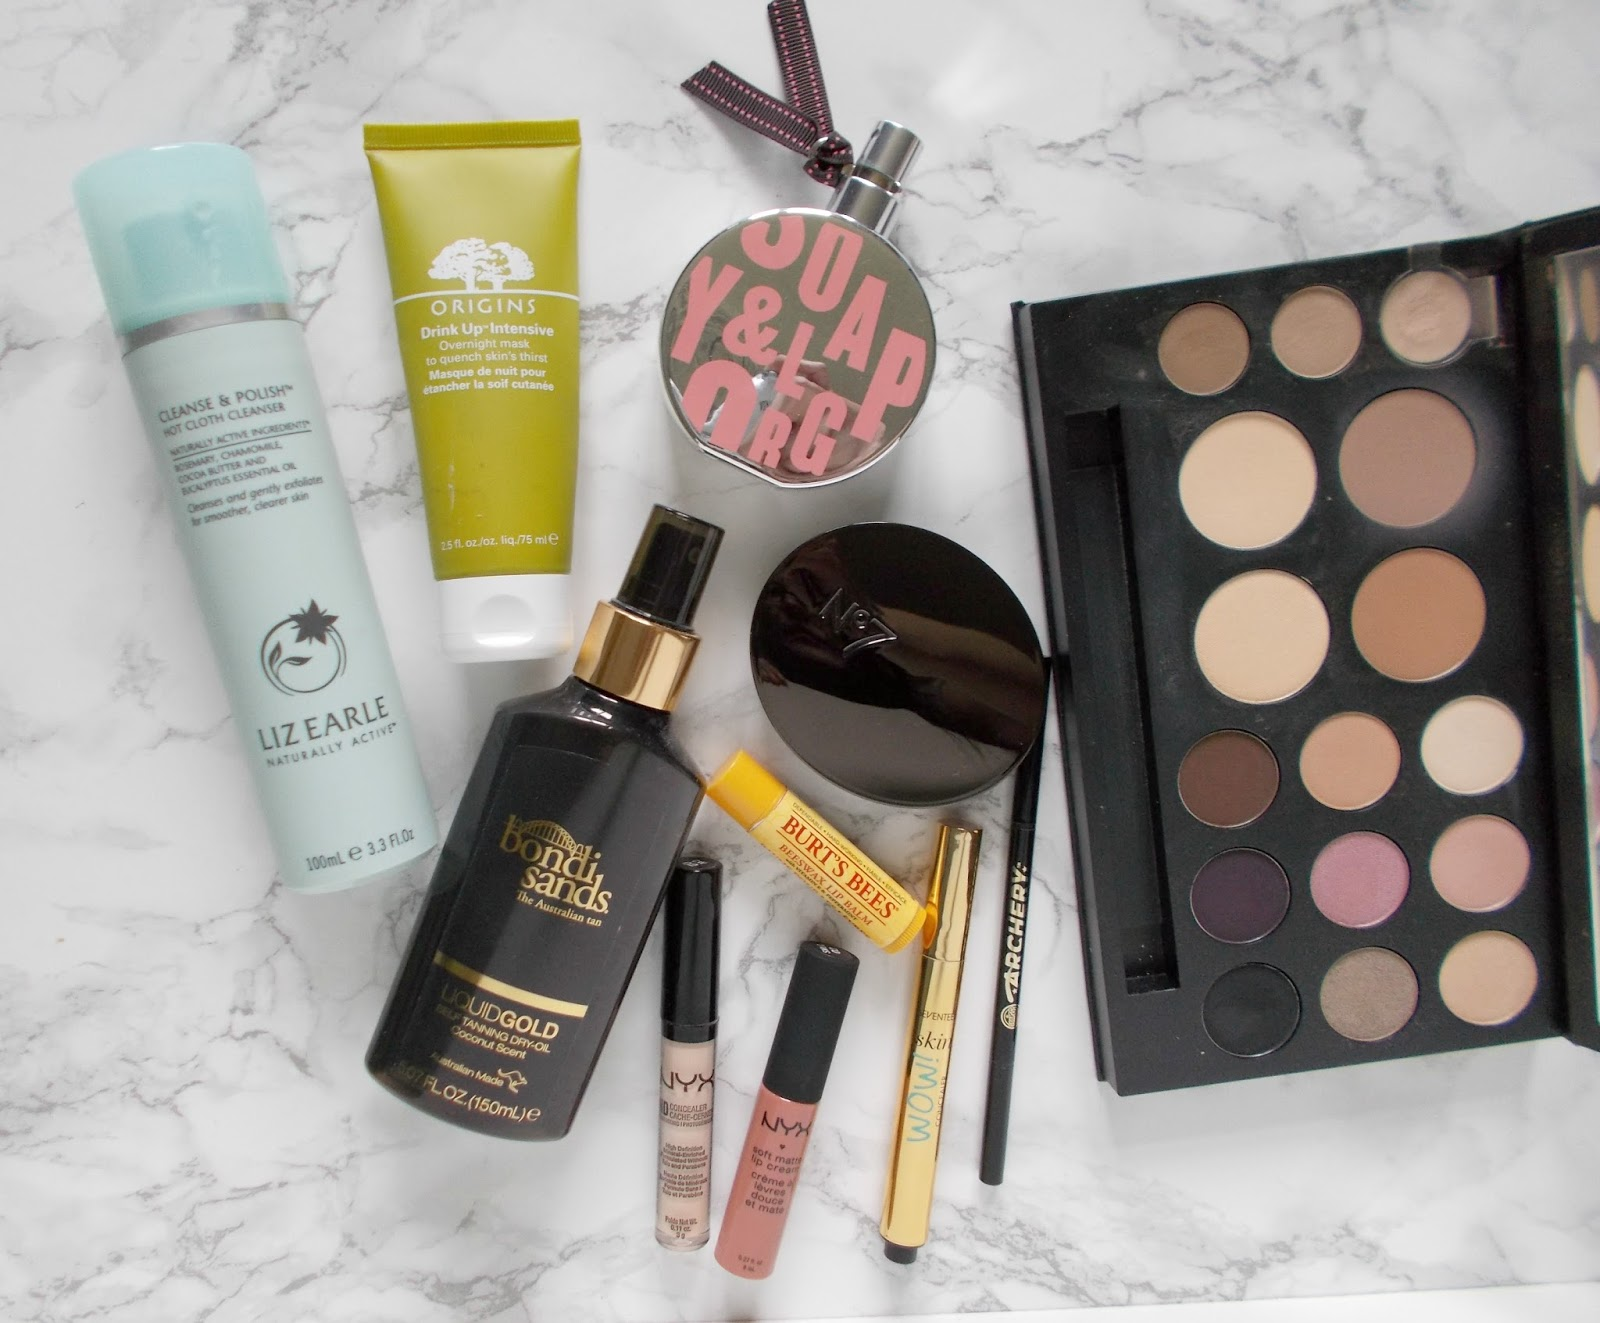 boots haul makeup skincare origins liz earle smashbox bondi sands nyx no7 burts bees soap and glory